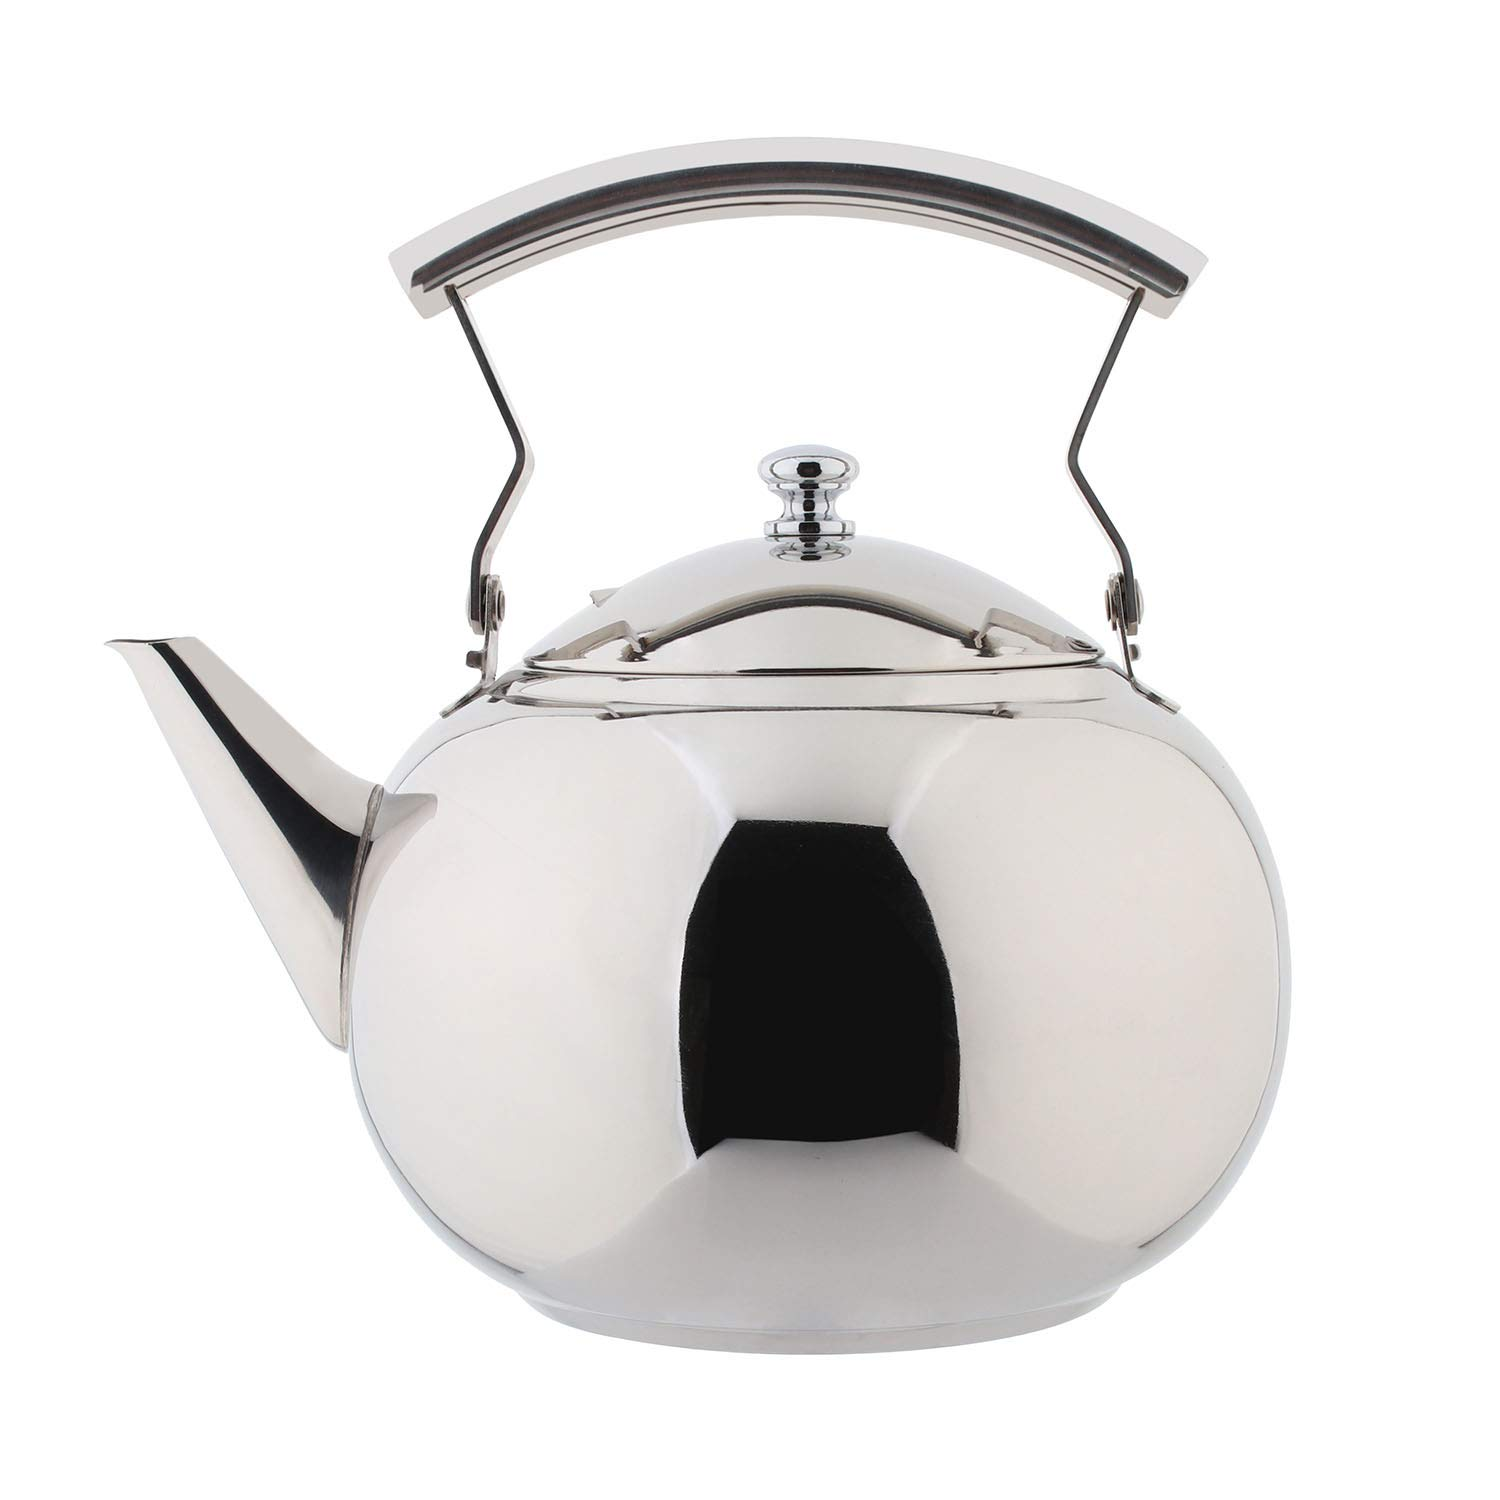 OMGard Teapot with Infuser Loose Tea Leaf 2 Liter Stainless Steel Tea Pot Coffee Water Small Kettle Filter Set Warmer Teakettle for Stovetop Induction Stove Top 2.1 Quart / 68 Ounce